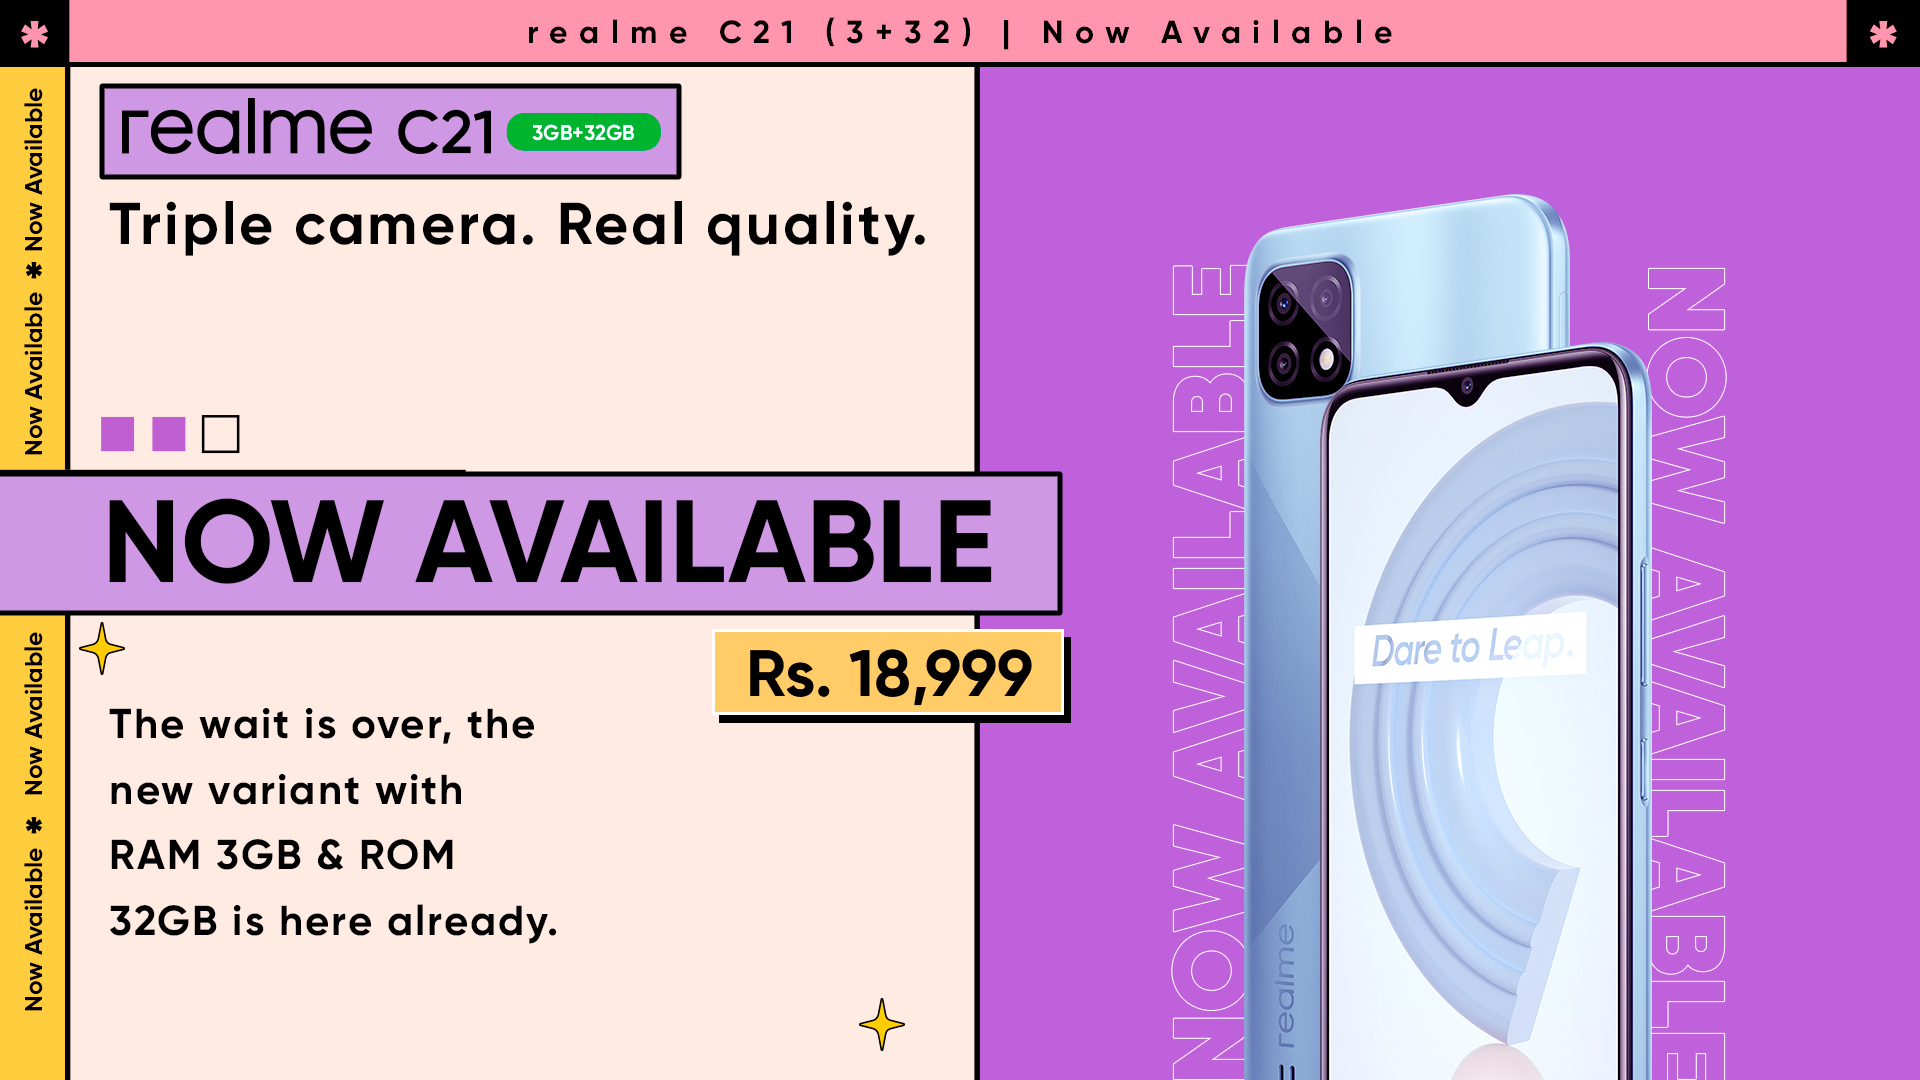 realme C21 Becomes the Ultimate Entry-level Quality King with its New 3GB + 32GB Variant